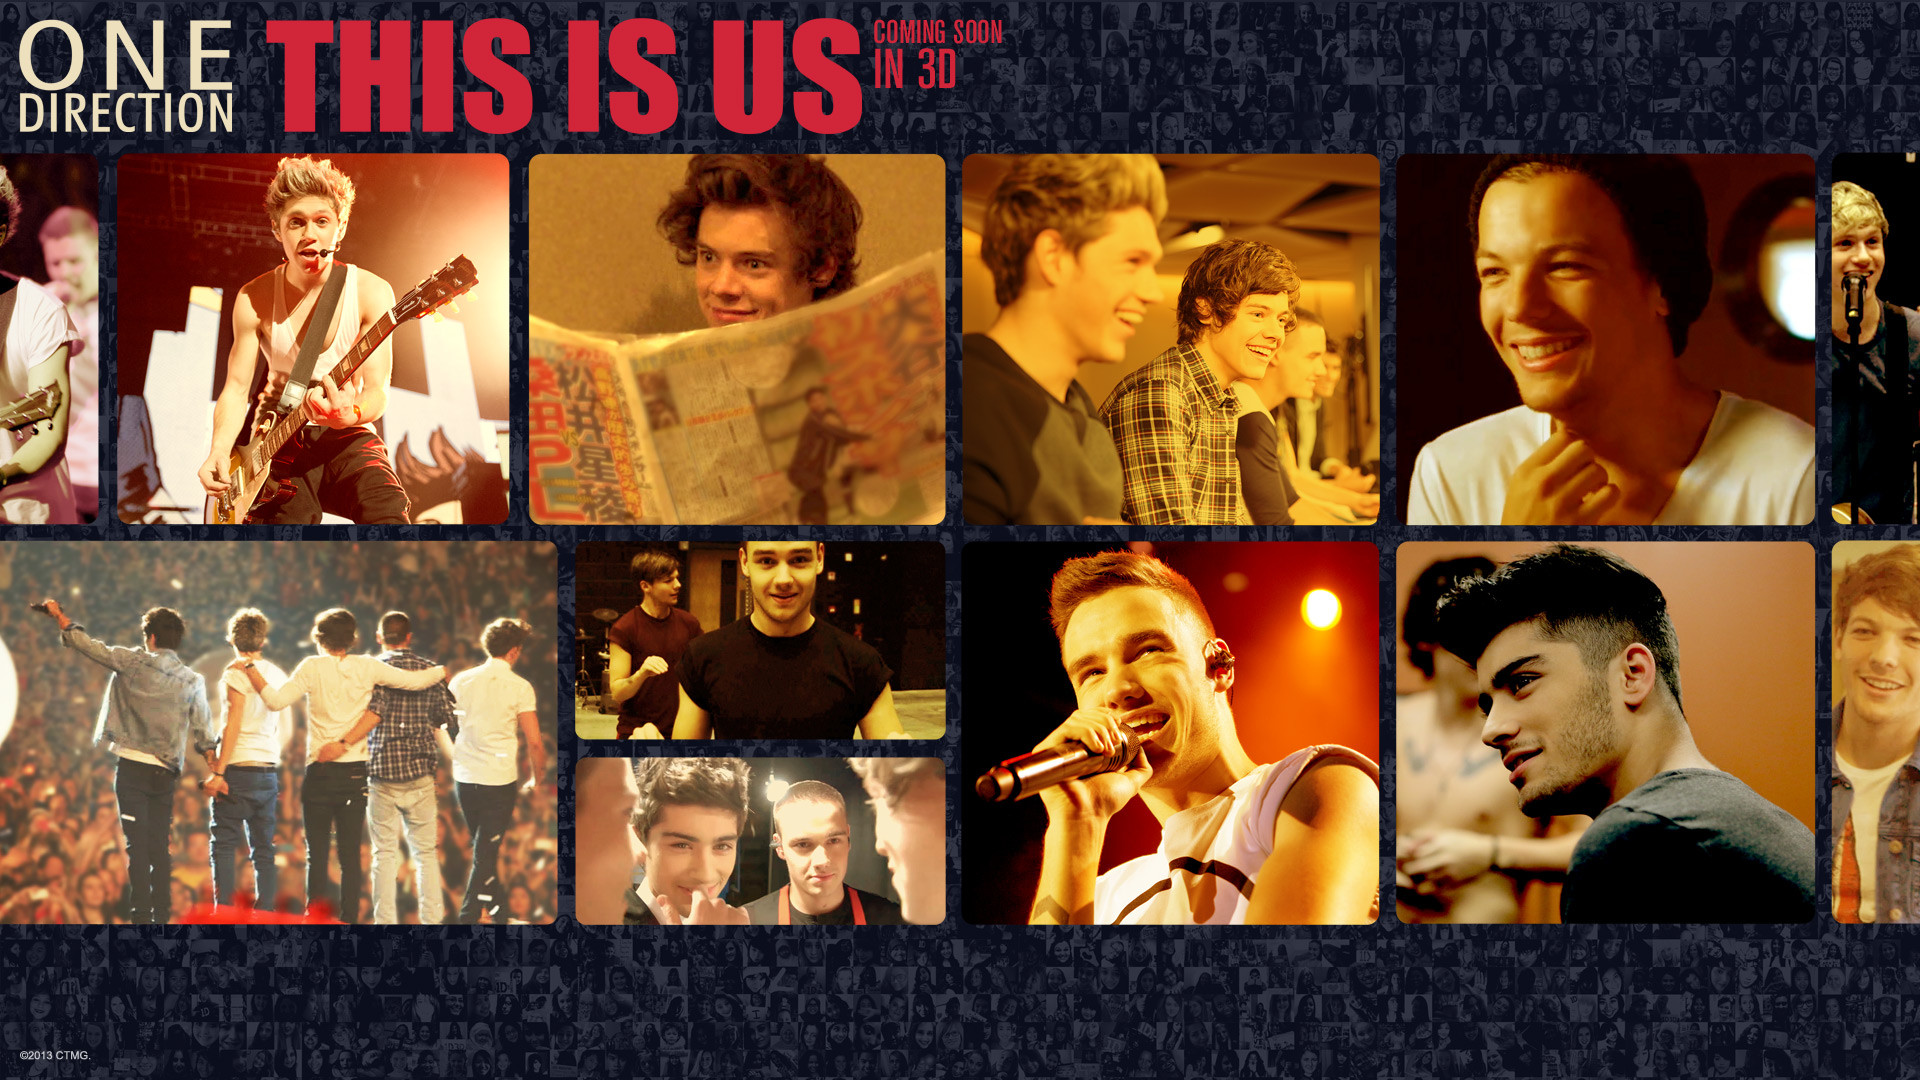 One Direction This Is Us Movie Wallpaper #1